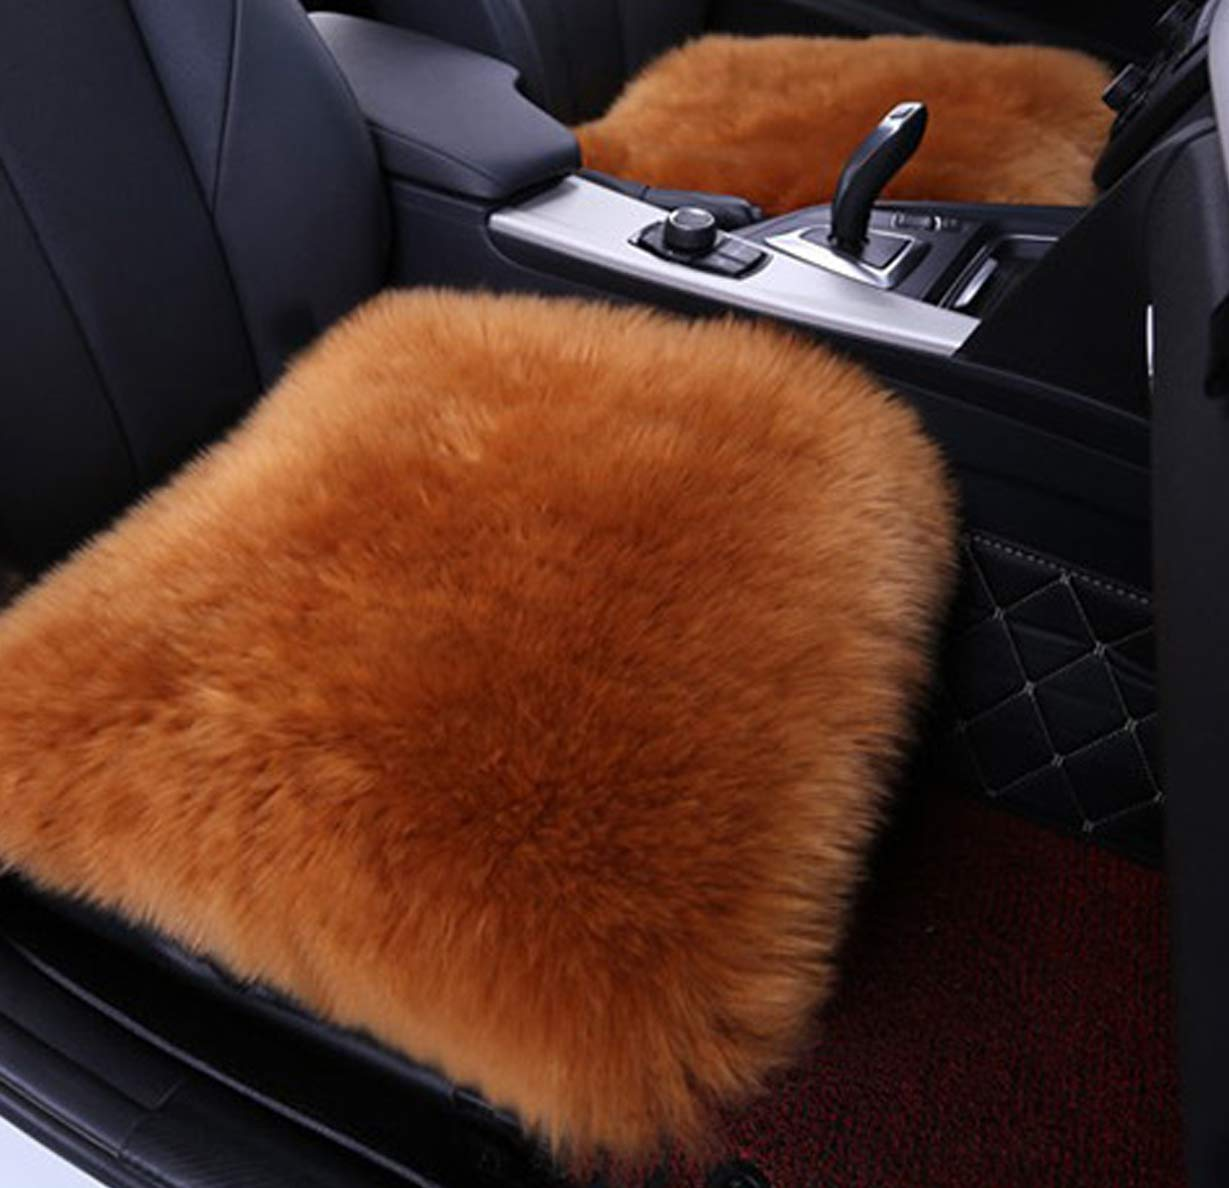 Soft Wool Car Seat Covers Universal Fit Most Car, Truck, SUV,Styling Auto Accessories-Coffee,18 53 inches